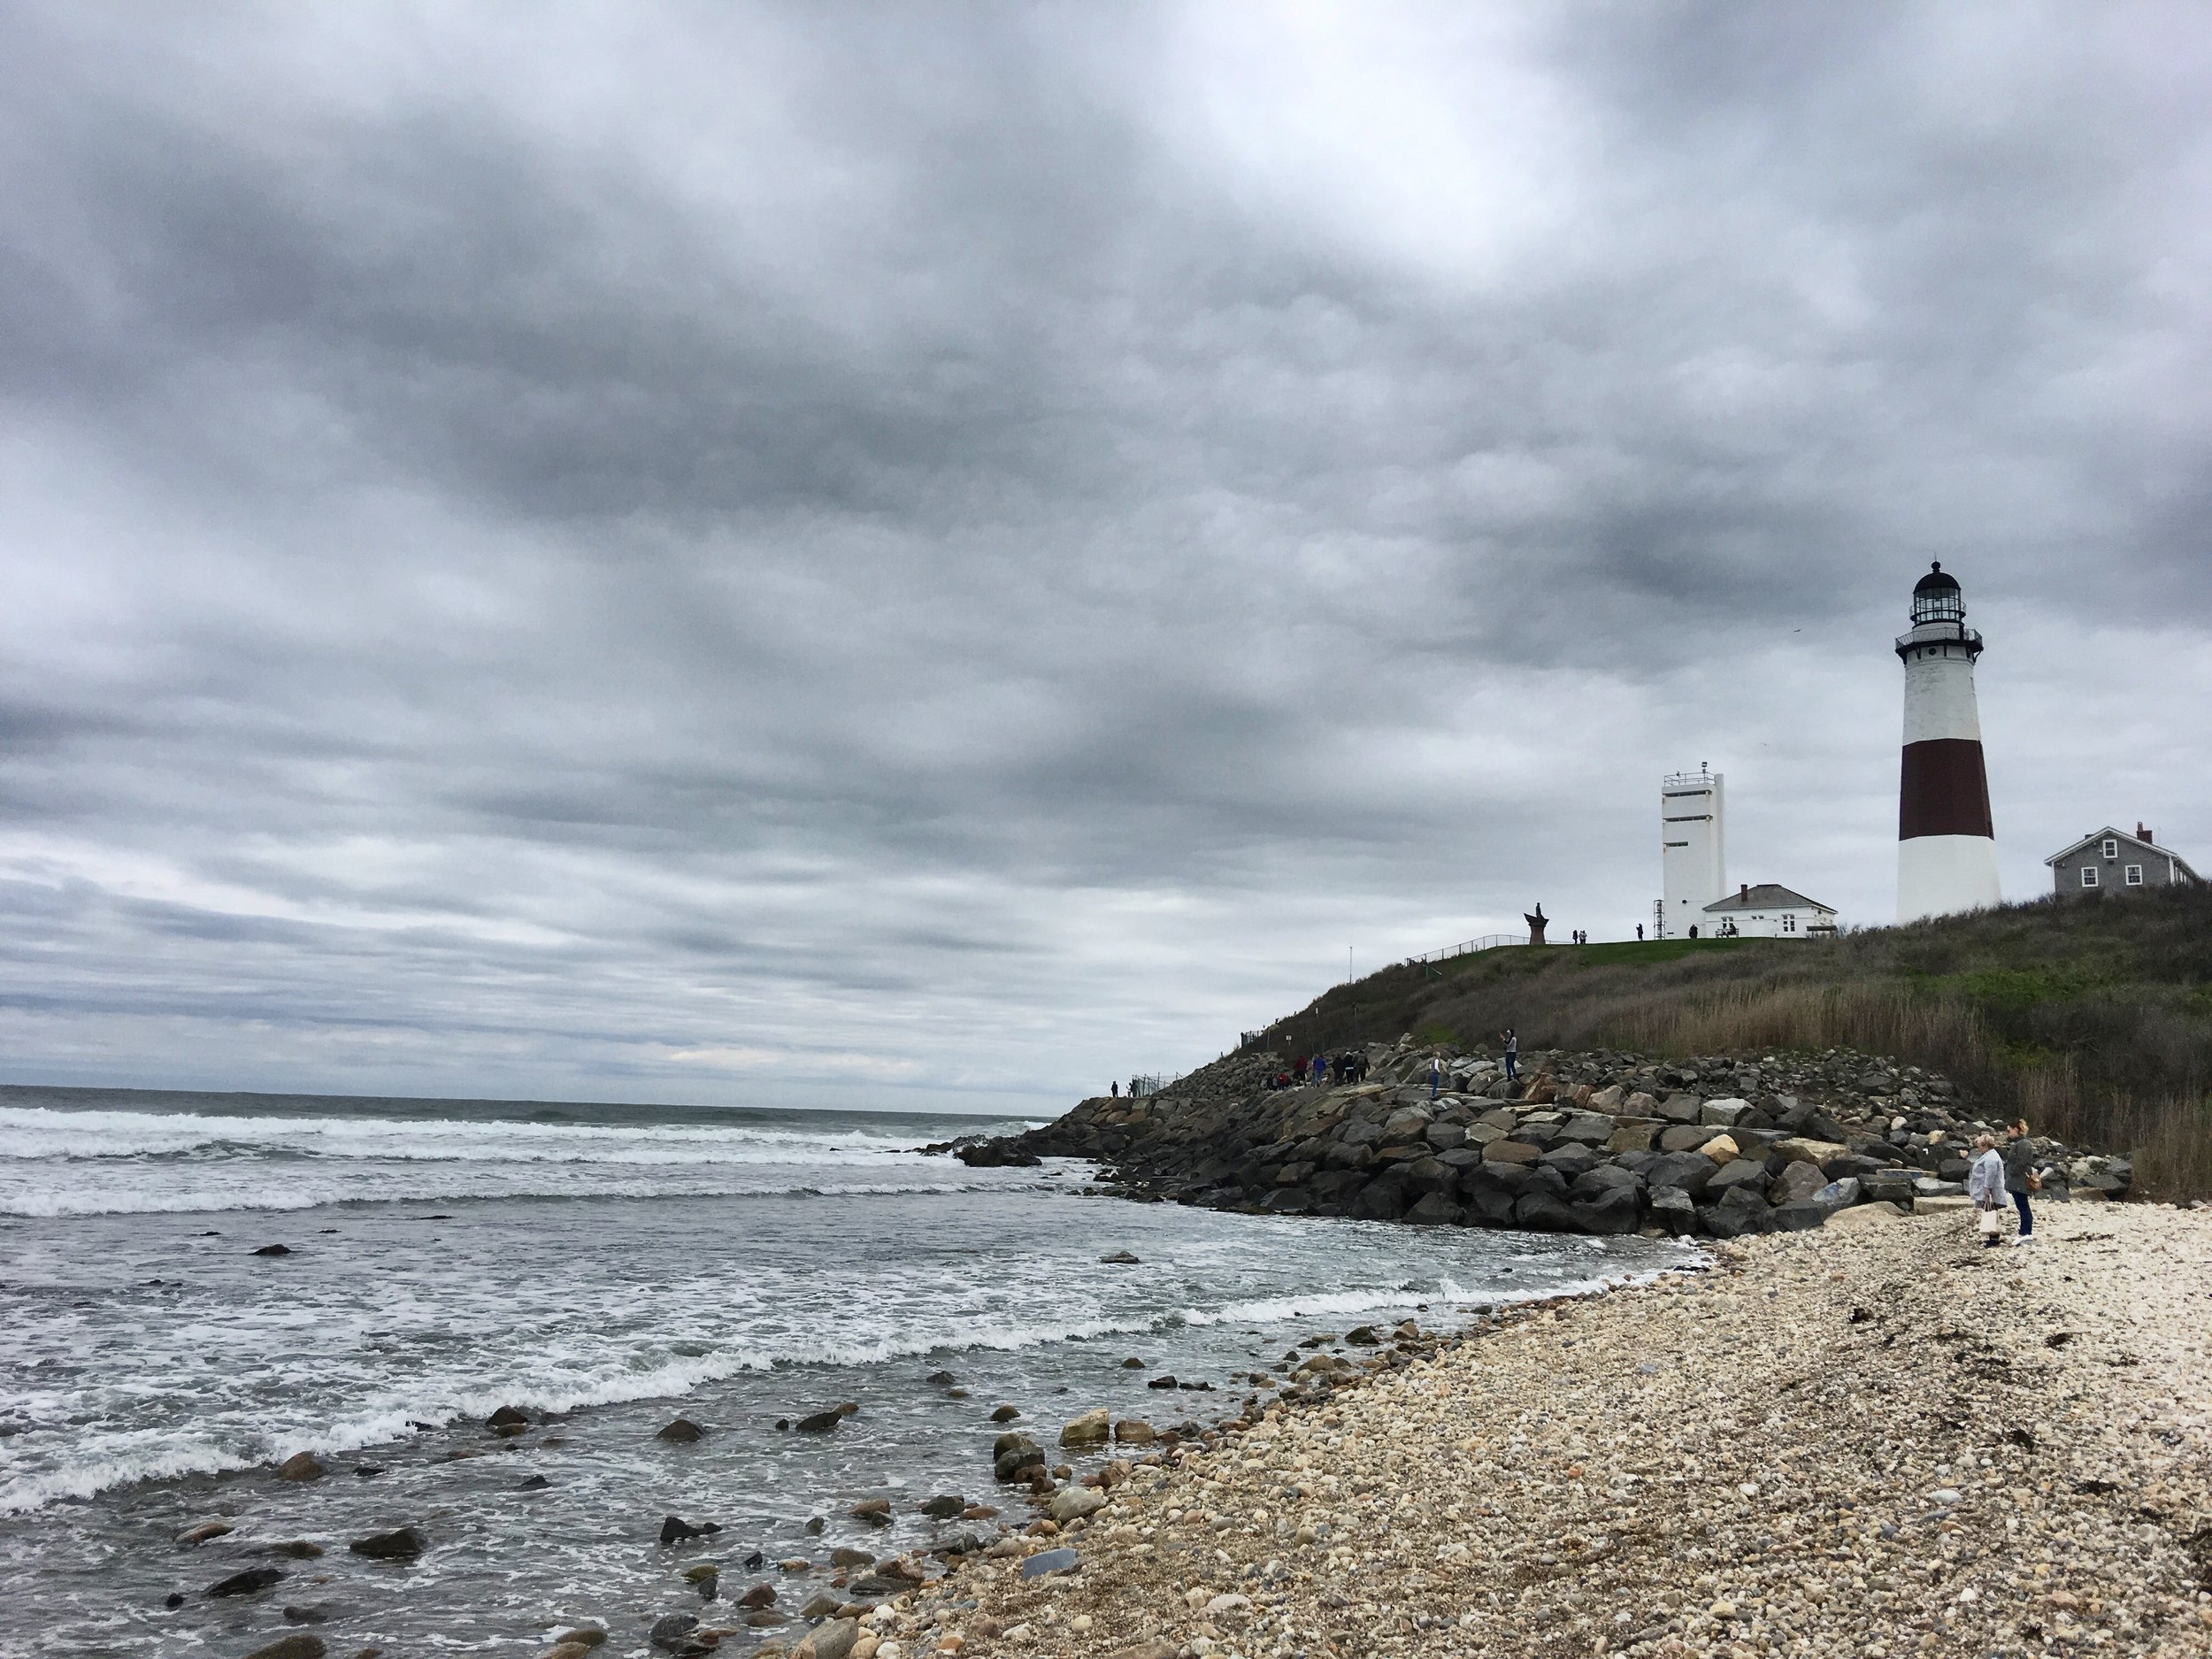 Montauk Lighthouse. Photo by Rich Nardo.